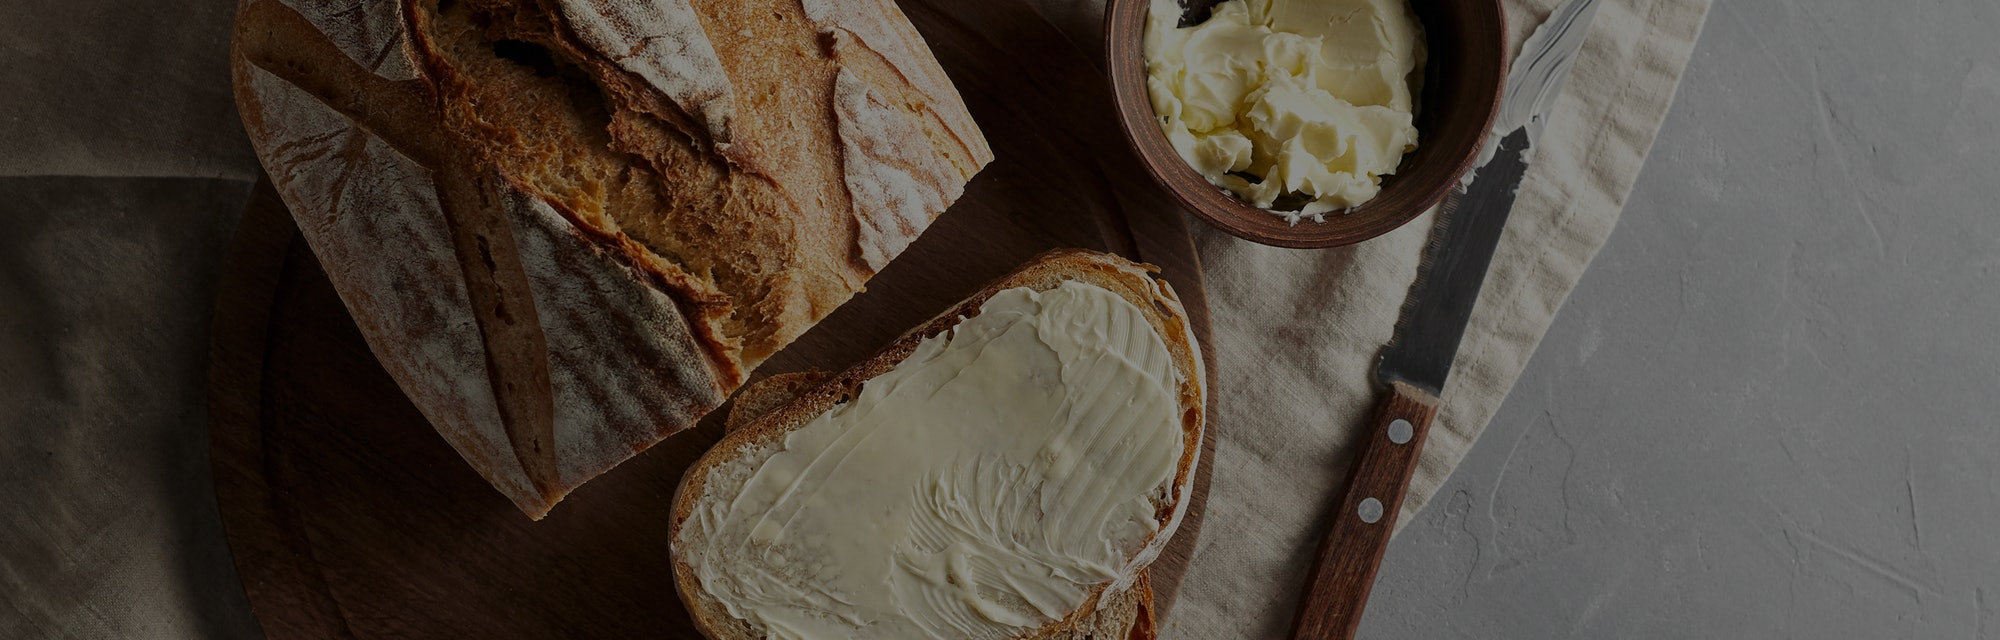 Artisan sliced toast bread with butter and sugar on wooden cutting board. Simple breakfast on grey c...